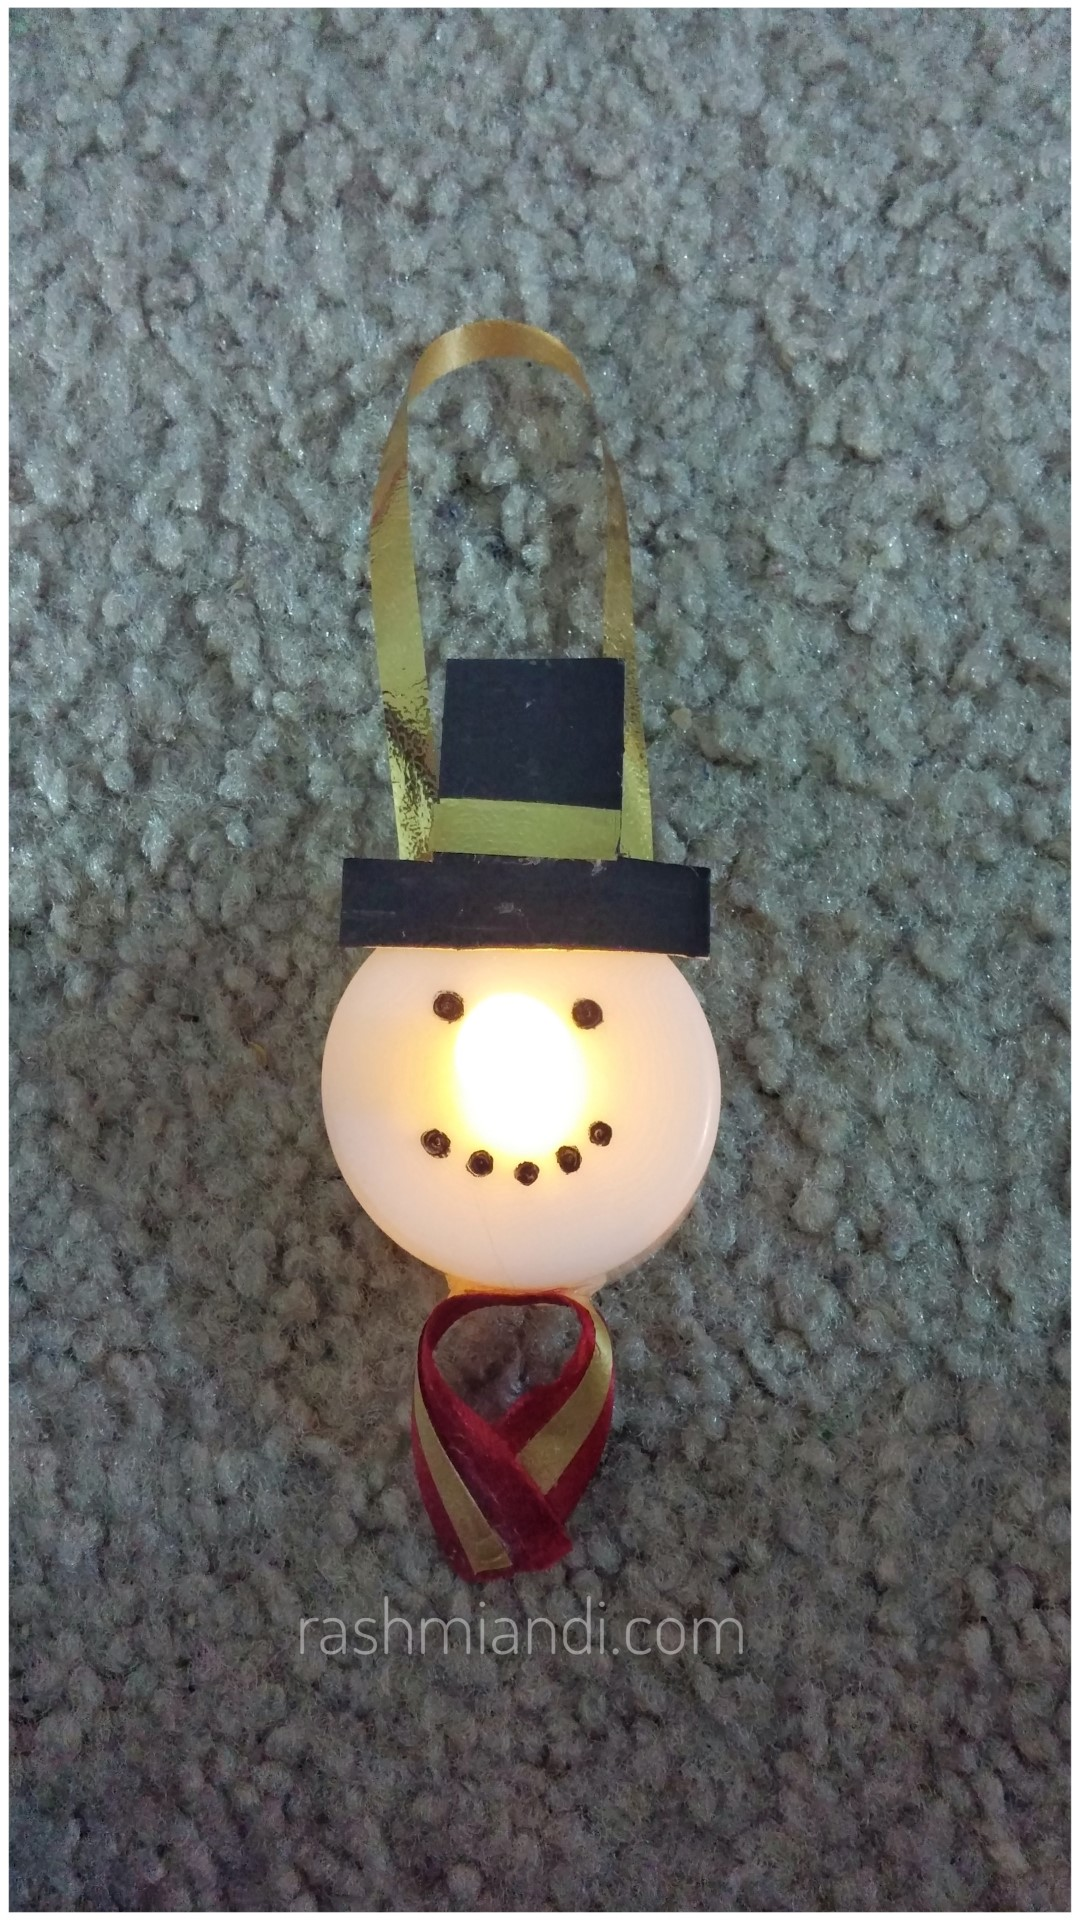 All You Need Is A LED Tea Light Candle And Some Craft Supplies To Make This  Cute Ornament. Have Fun Making This With Your Kids. Happy Holidays!